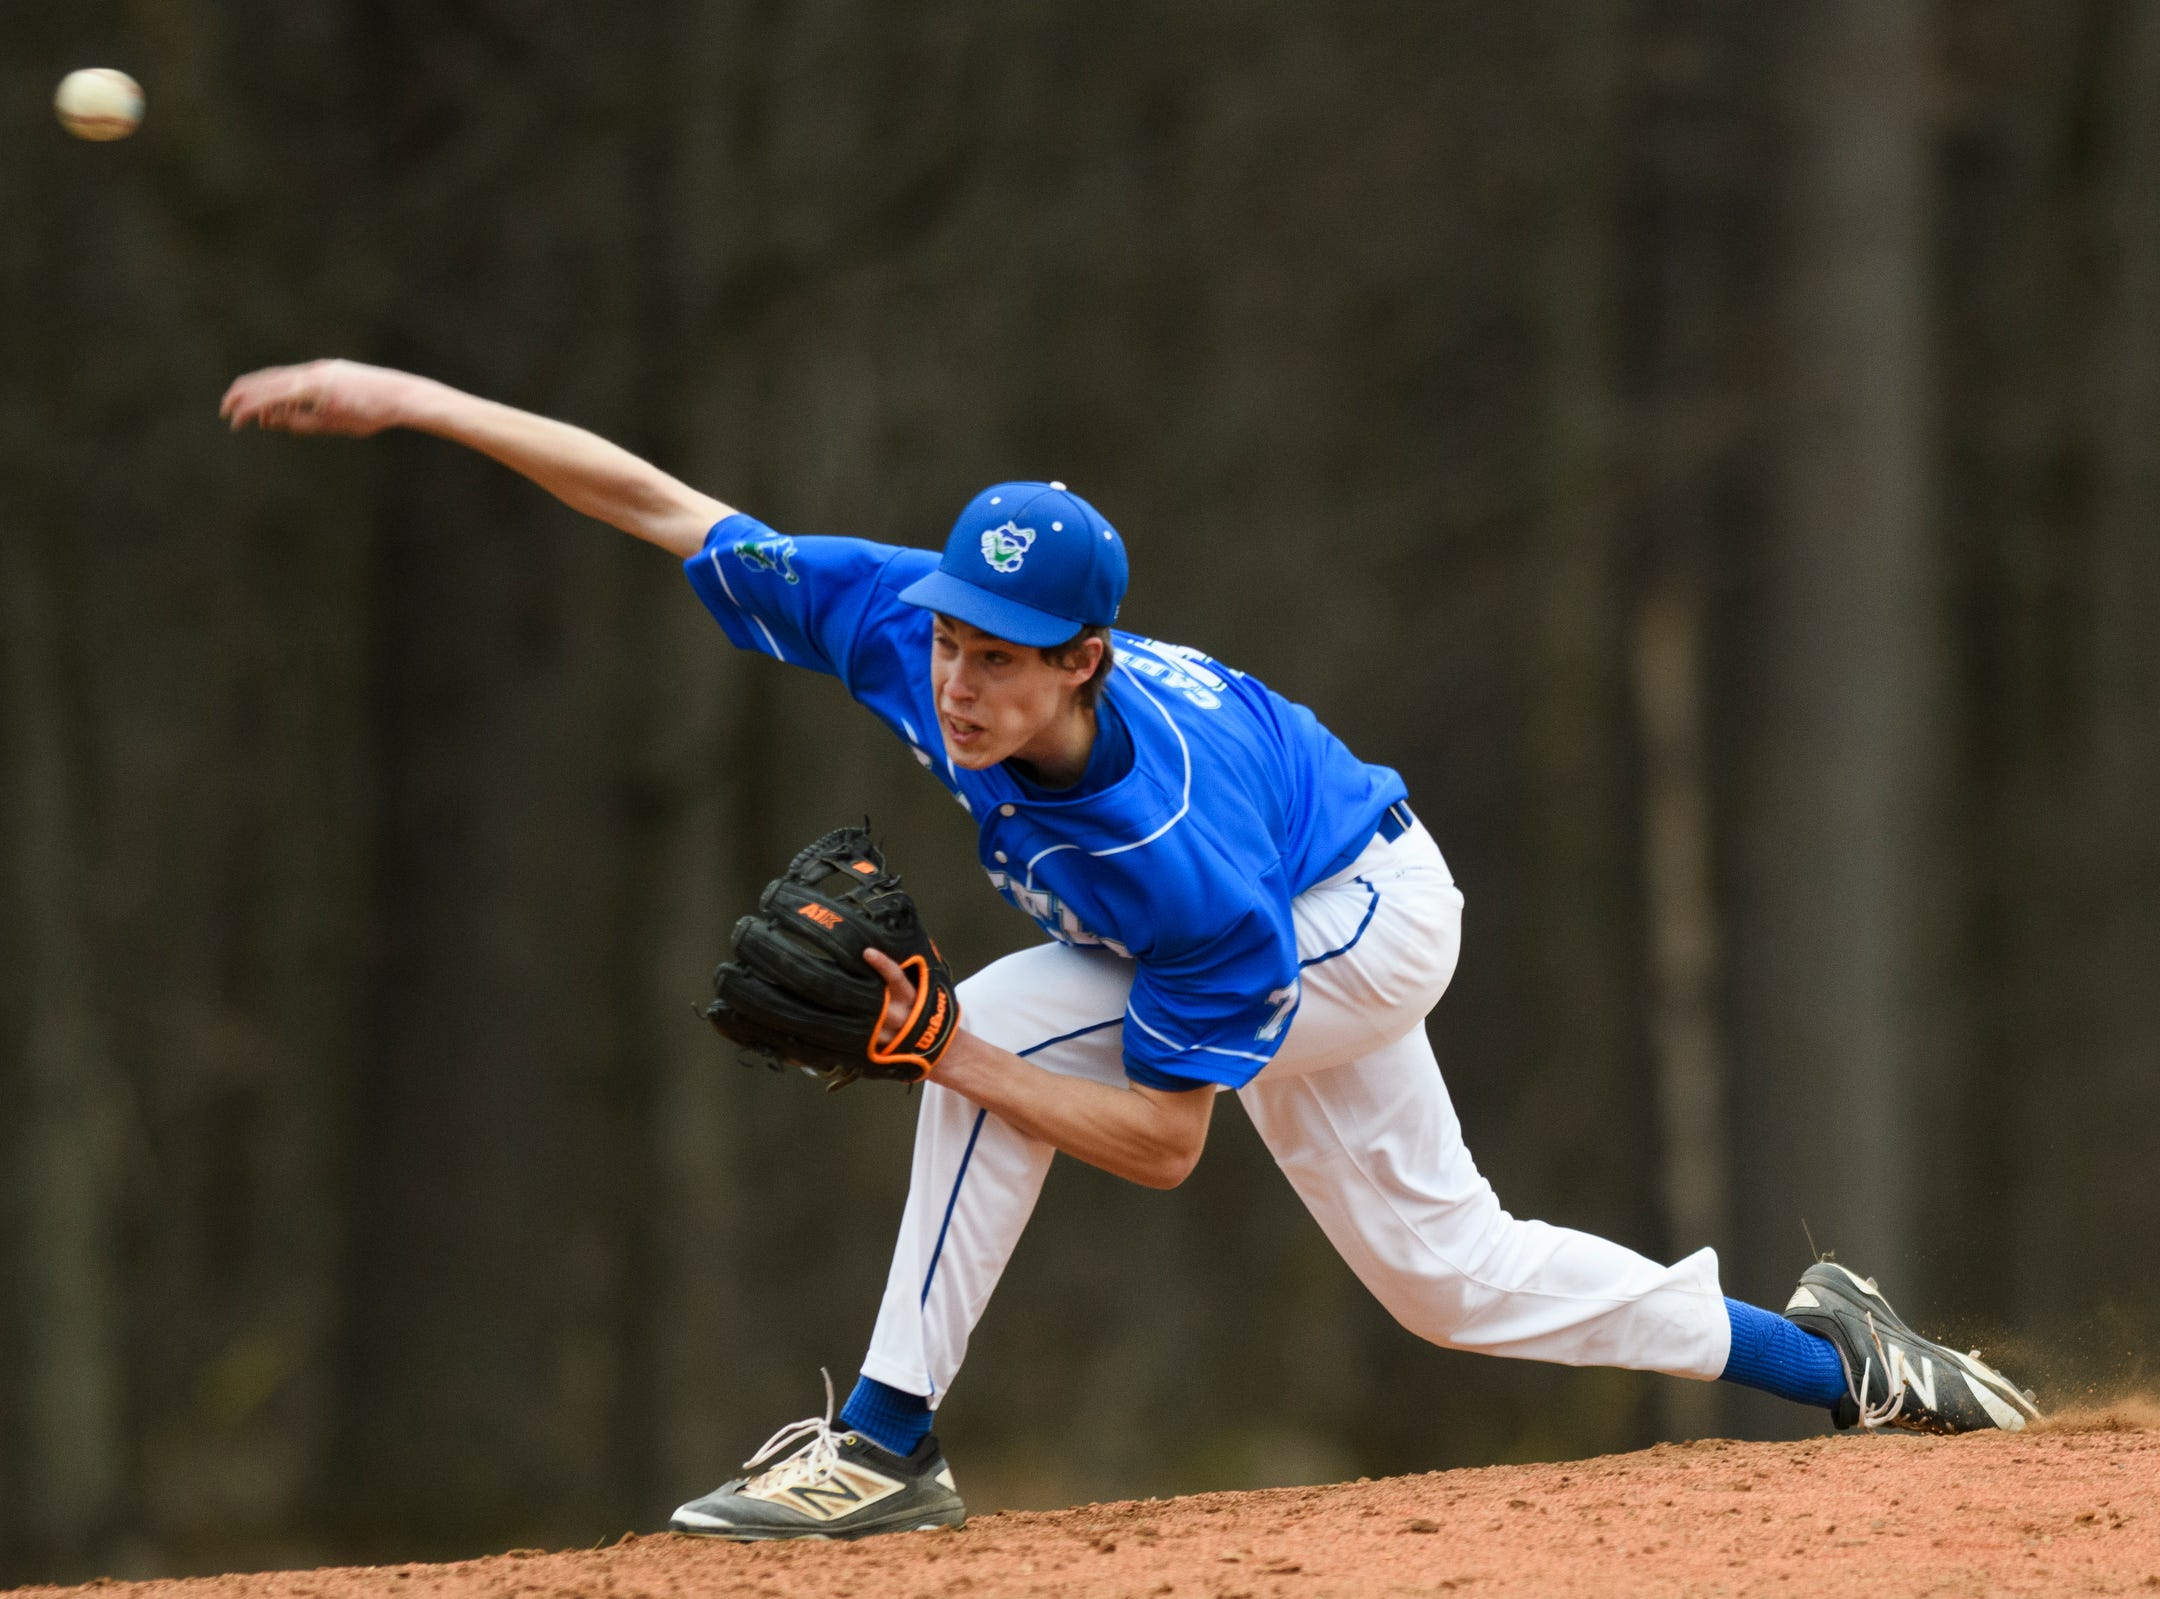 Colchester pitcher Chase Carey (7) delivers a pitch during the boys baseball game between the South Burlington Wolves and the Colchester Lakers at Colchester high school on Thursday afternoon April 18, 2019 in Colchester, Vermont.